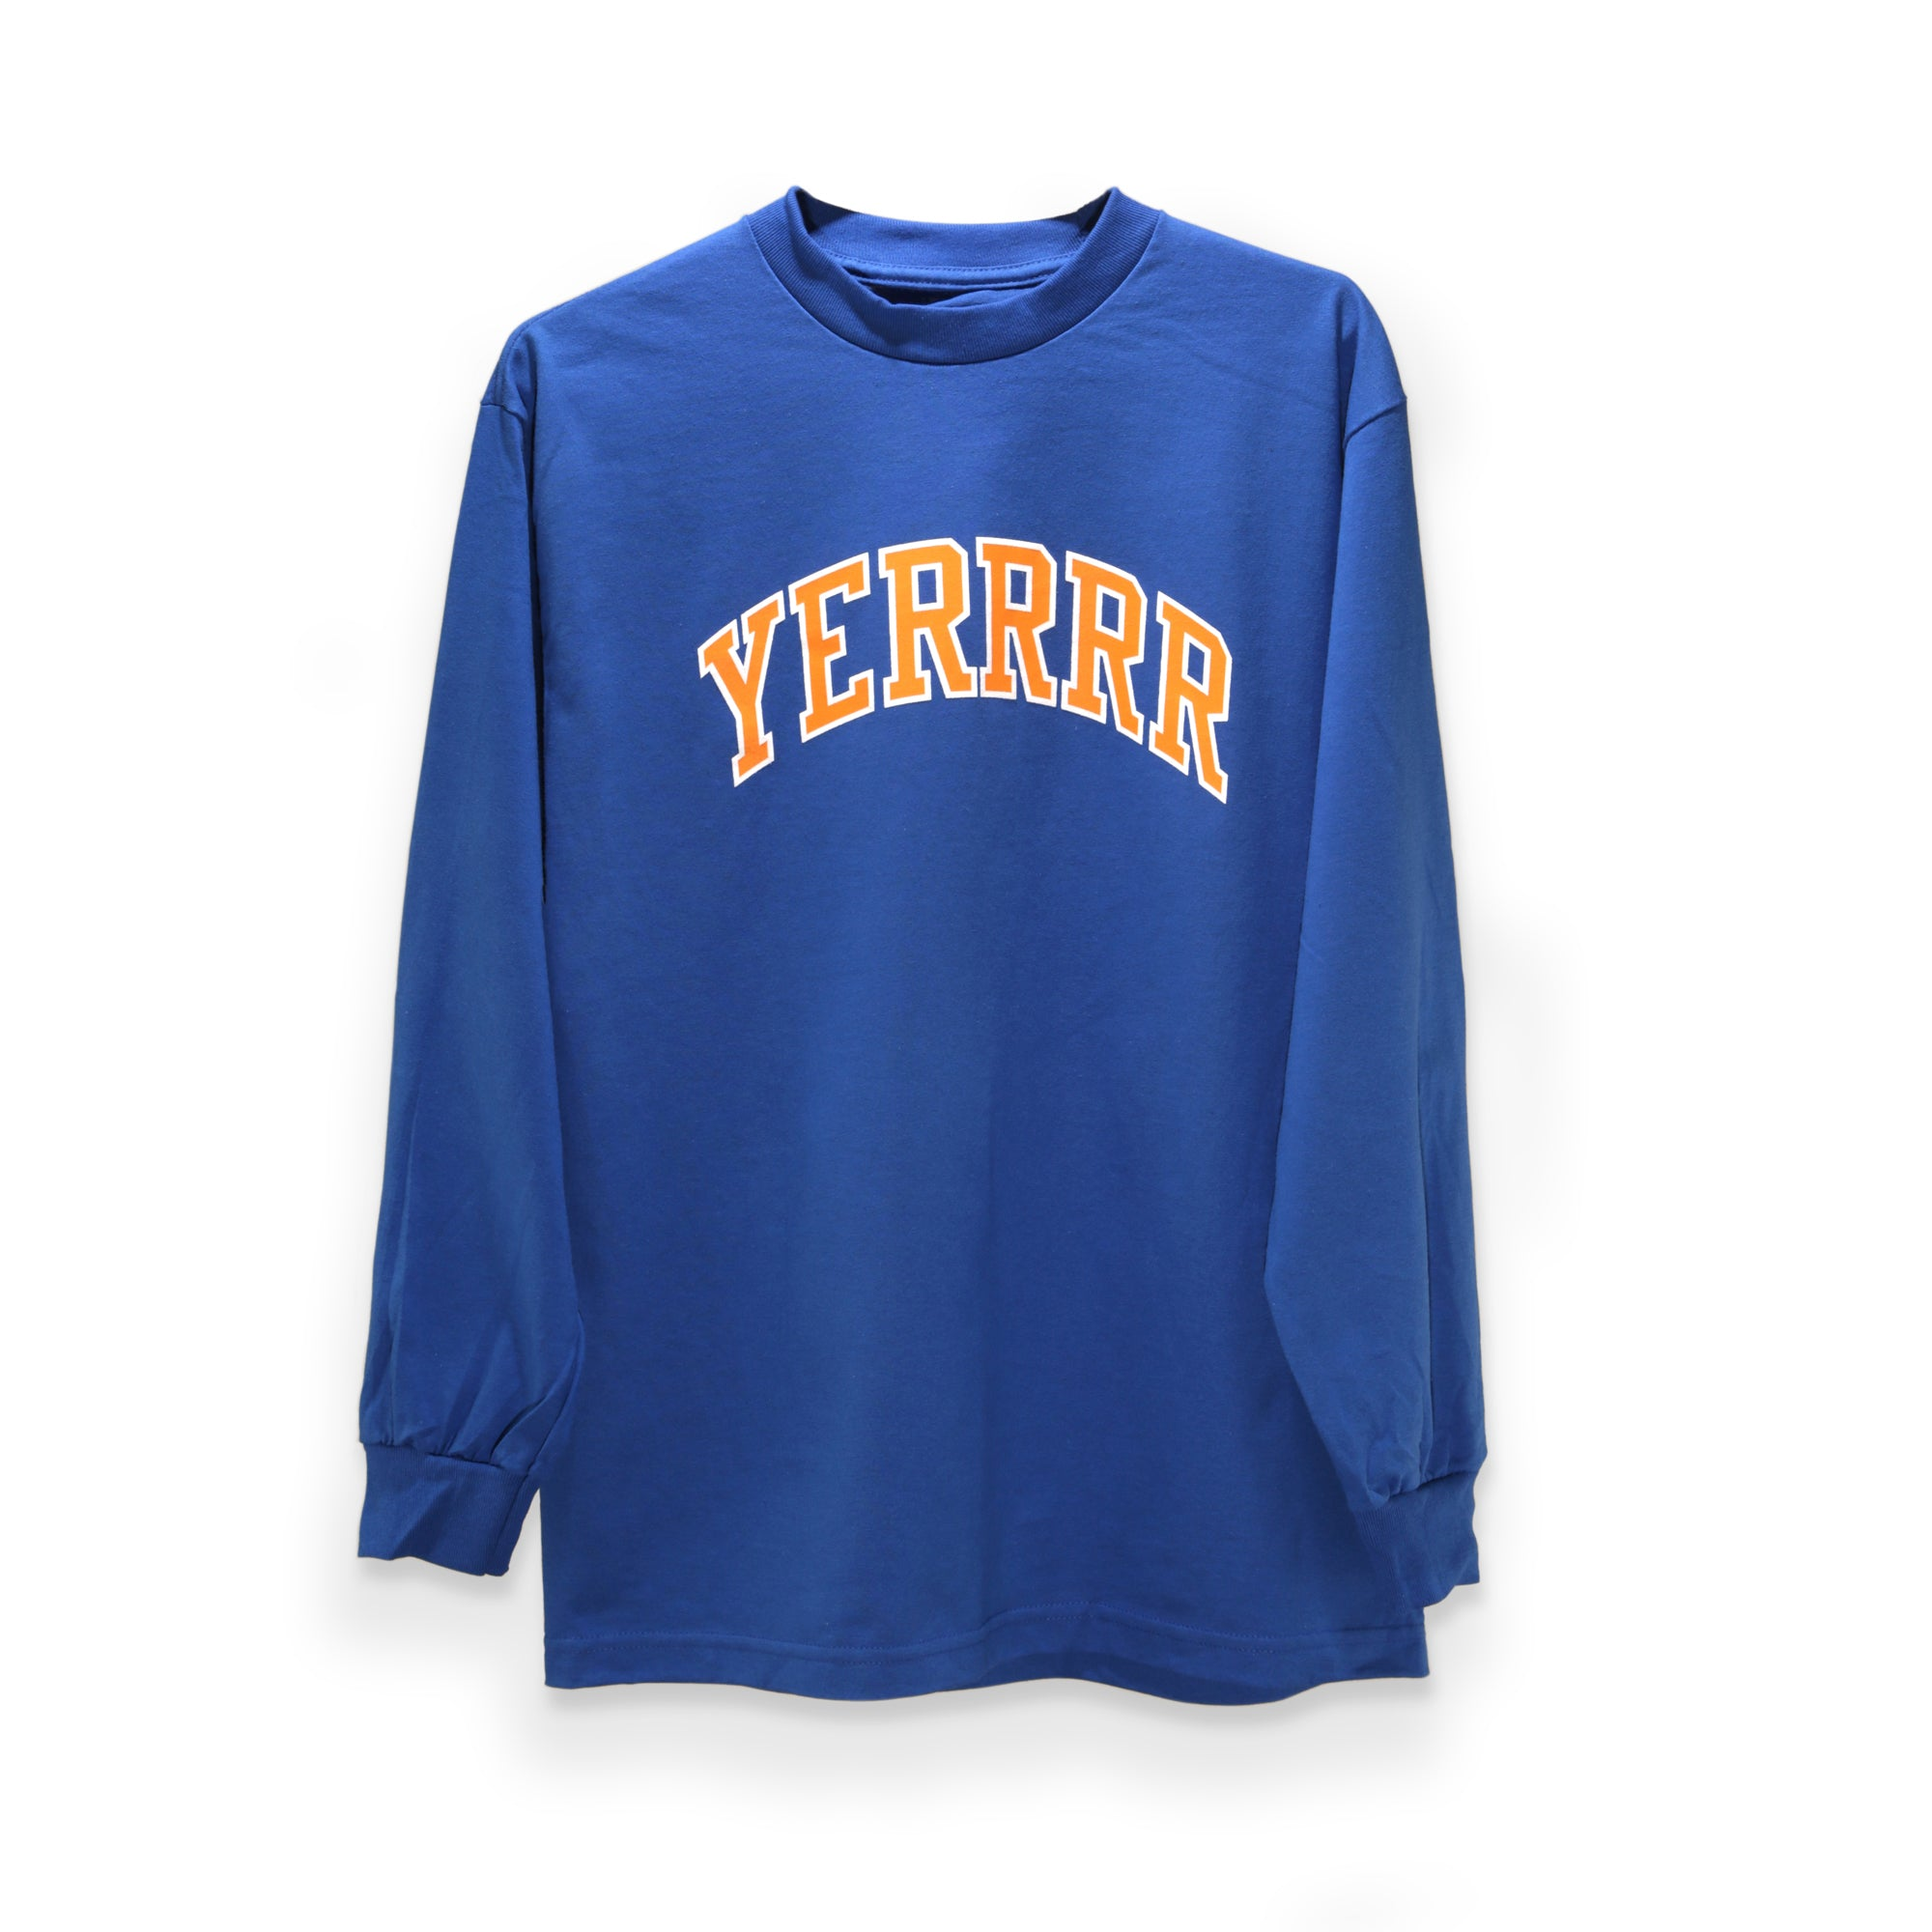 YERRRR - Knicks Away LS Tee